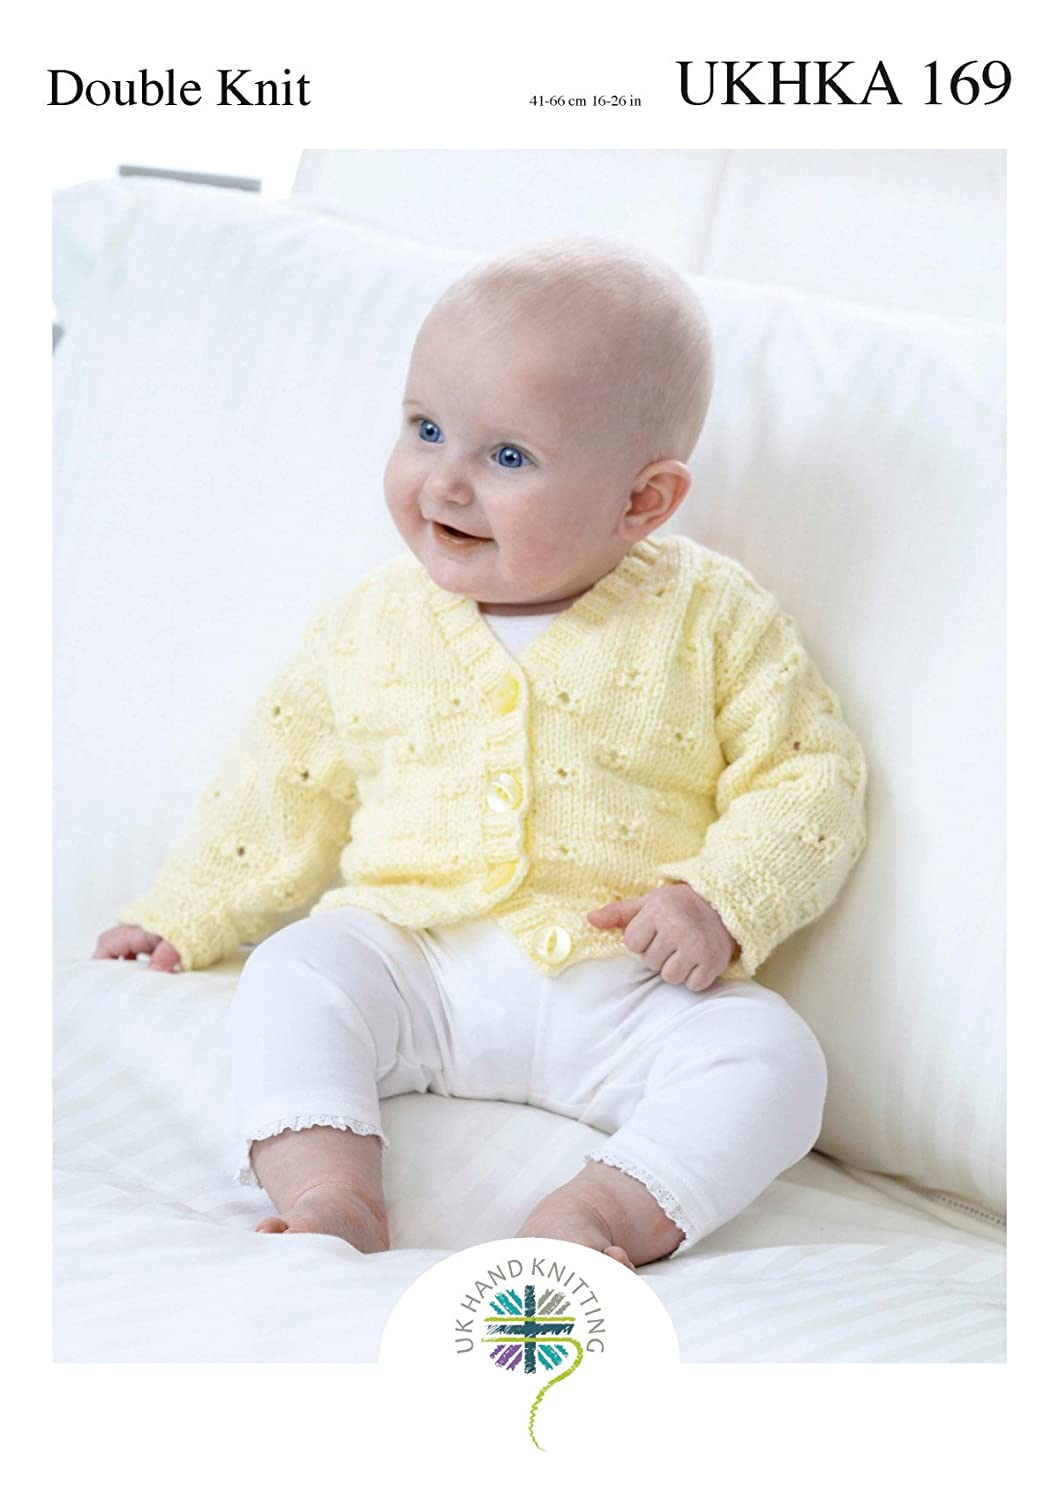 a2947337b Double Knitting Pattern for Baby Lace Cardigans Round V Neck or ...